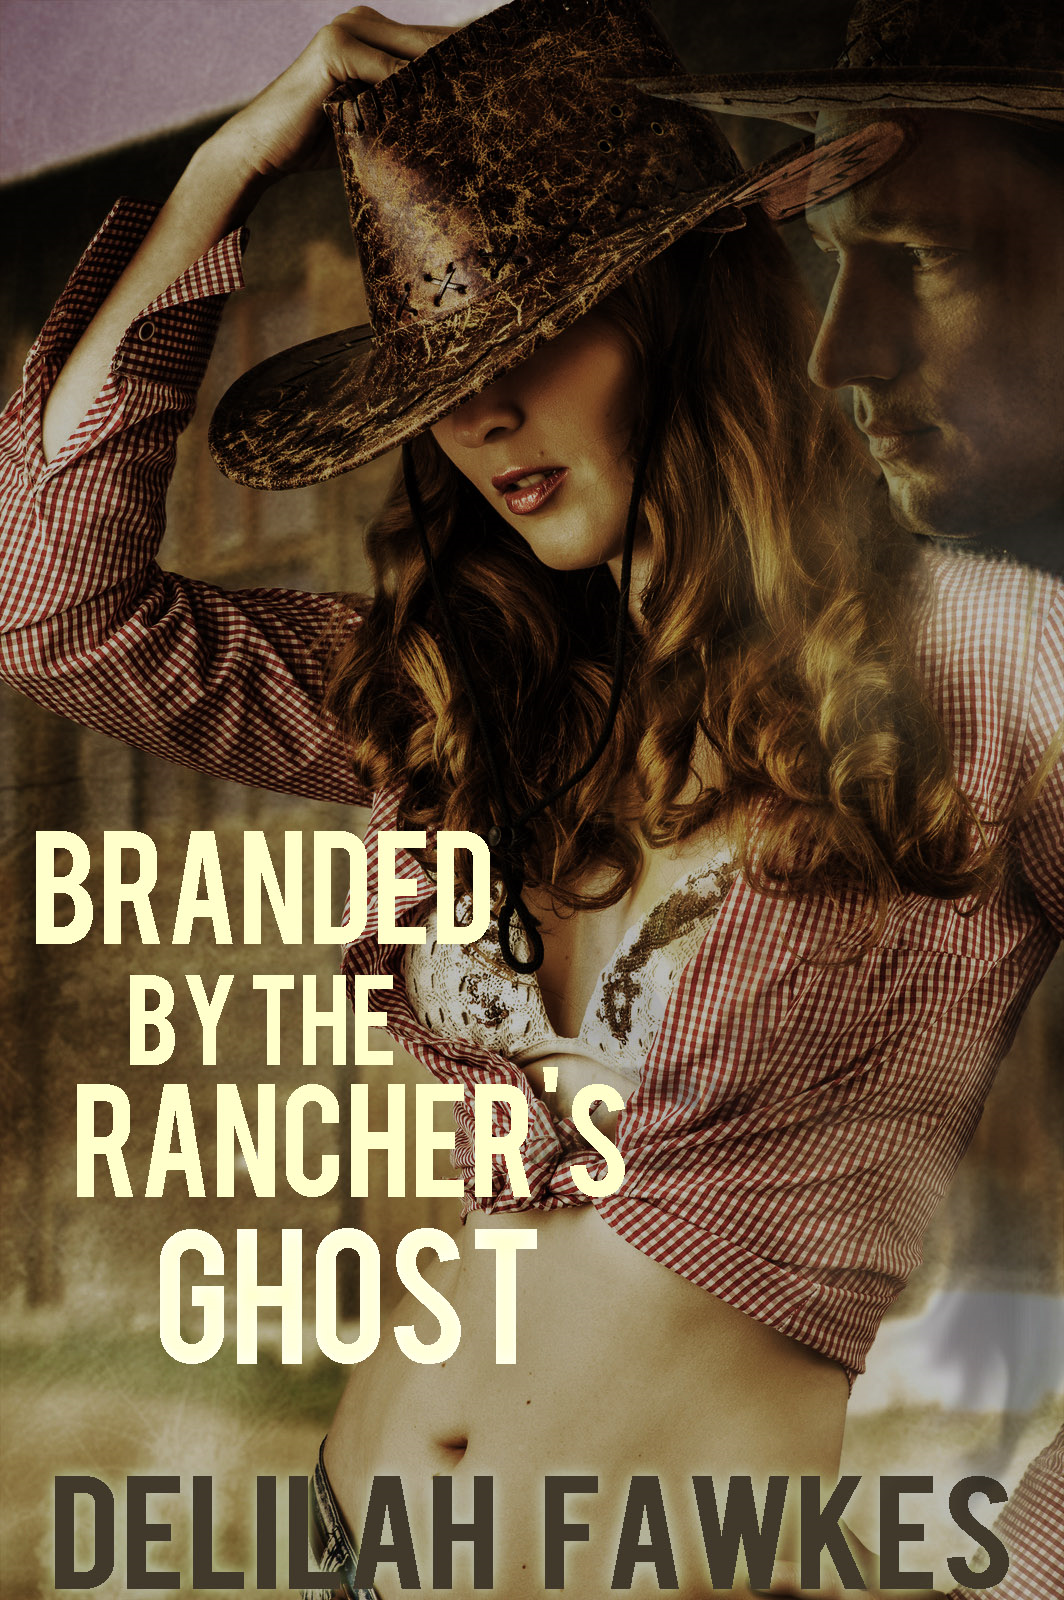 Delilah Fawkes - Branded by the Rancher's Ghost